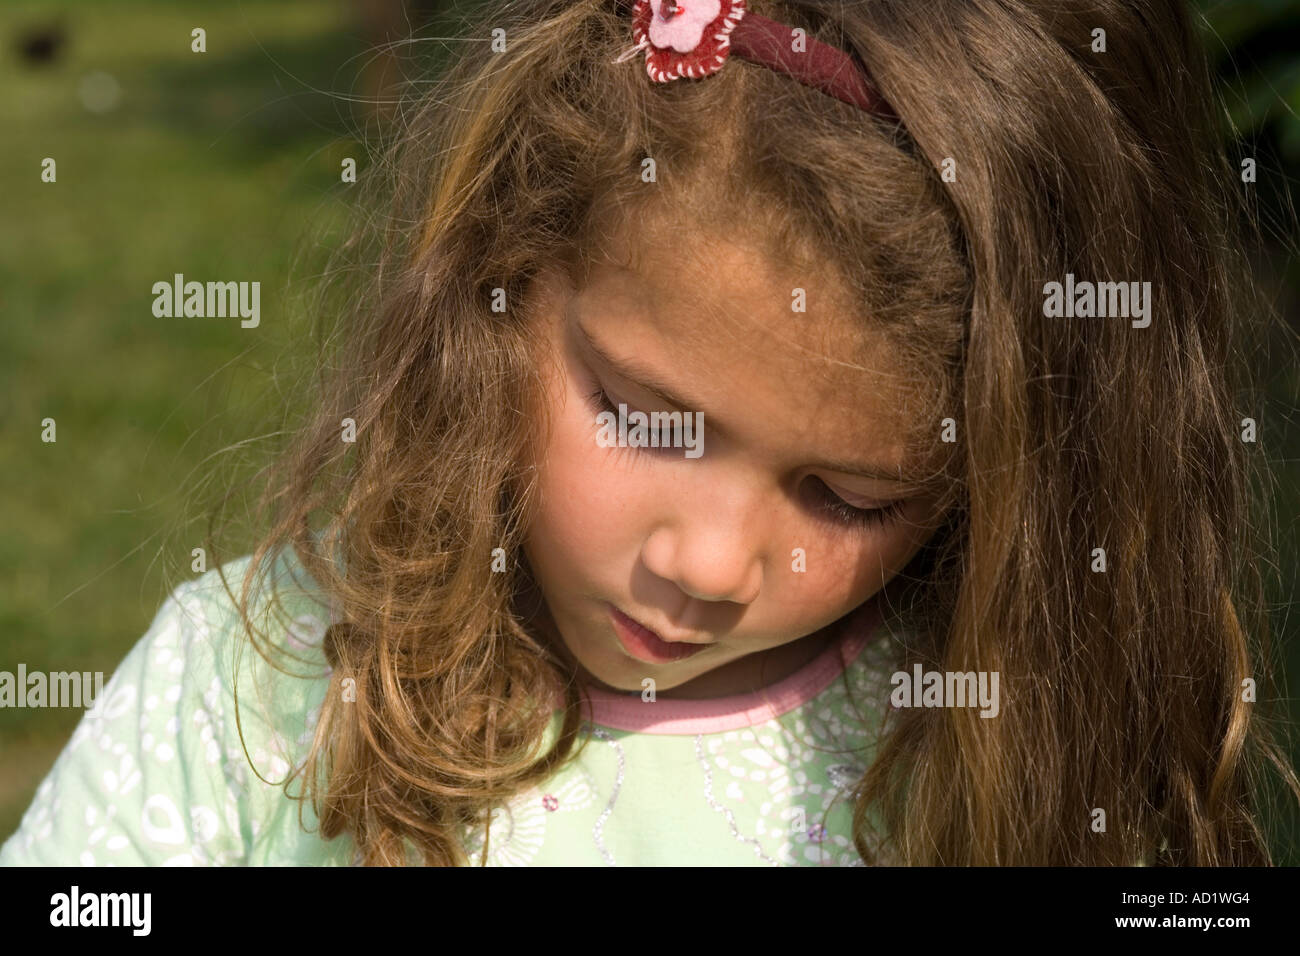 little girl seriously embarassed and depressed - Stock Image